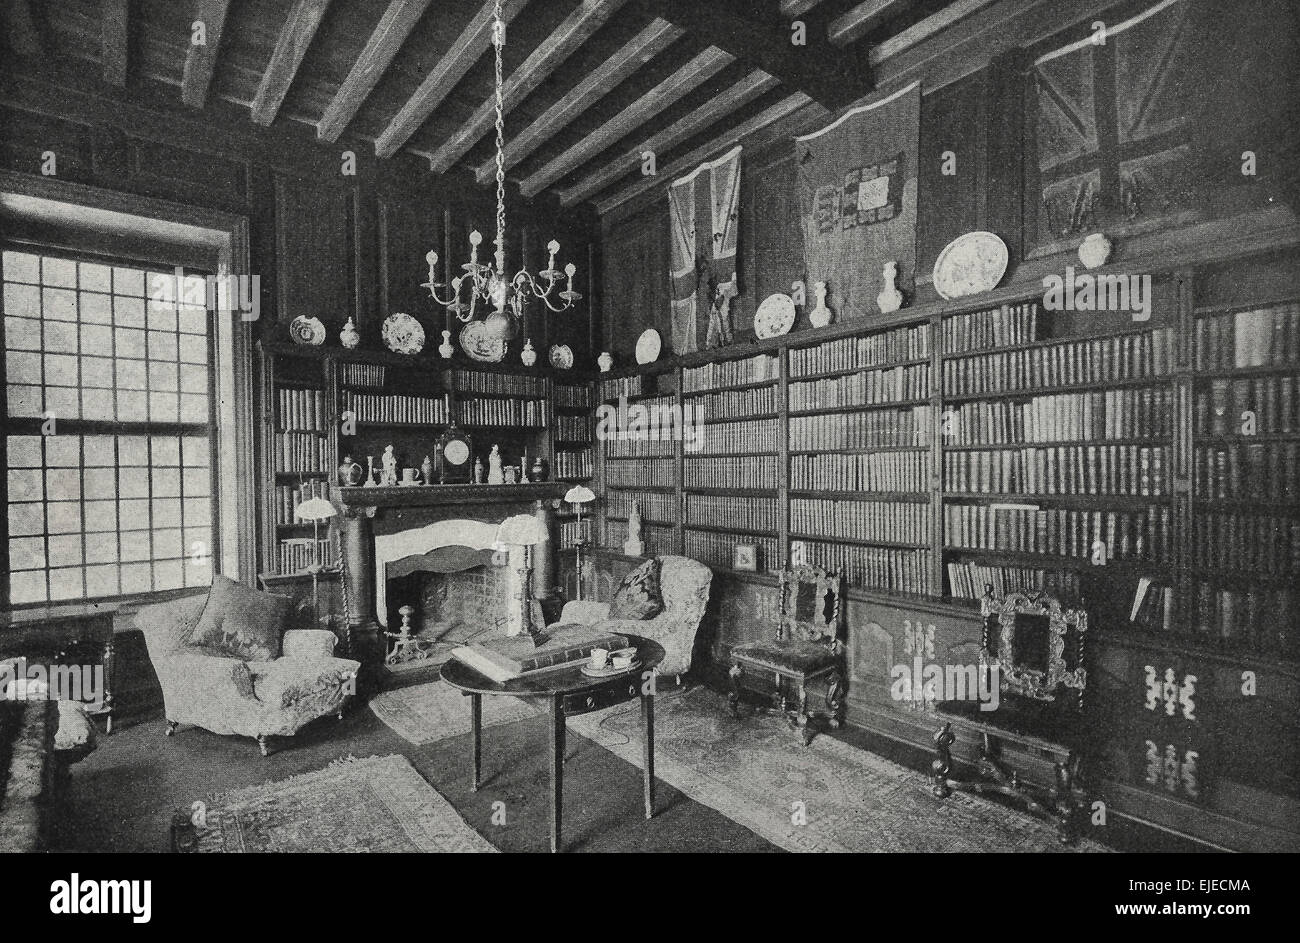 Cecil Rhodes Library at Groote Schuur, circa 1898 - Stock Image